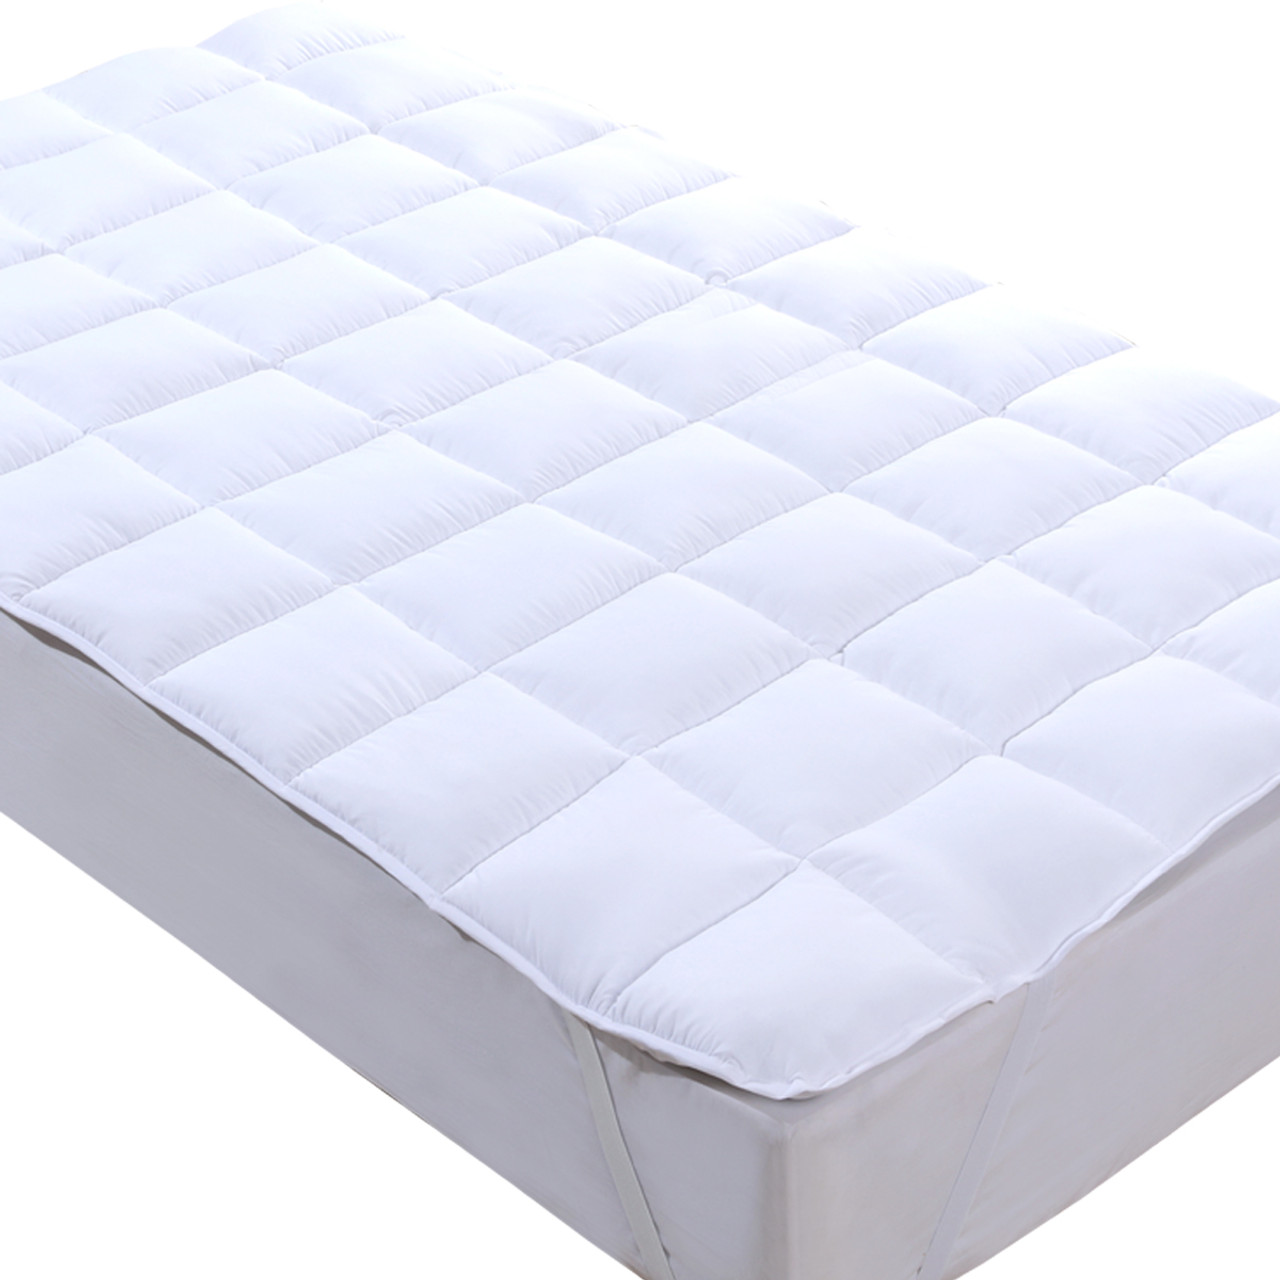 3 Inch Overfilled Plush Down Alternative Mattress Topper Microfiber Mattress Pad